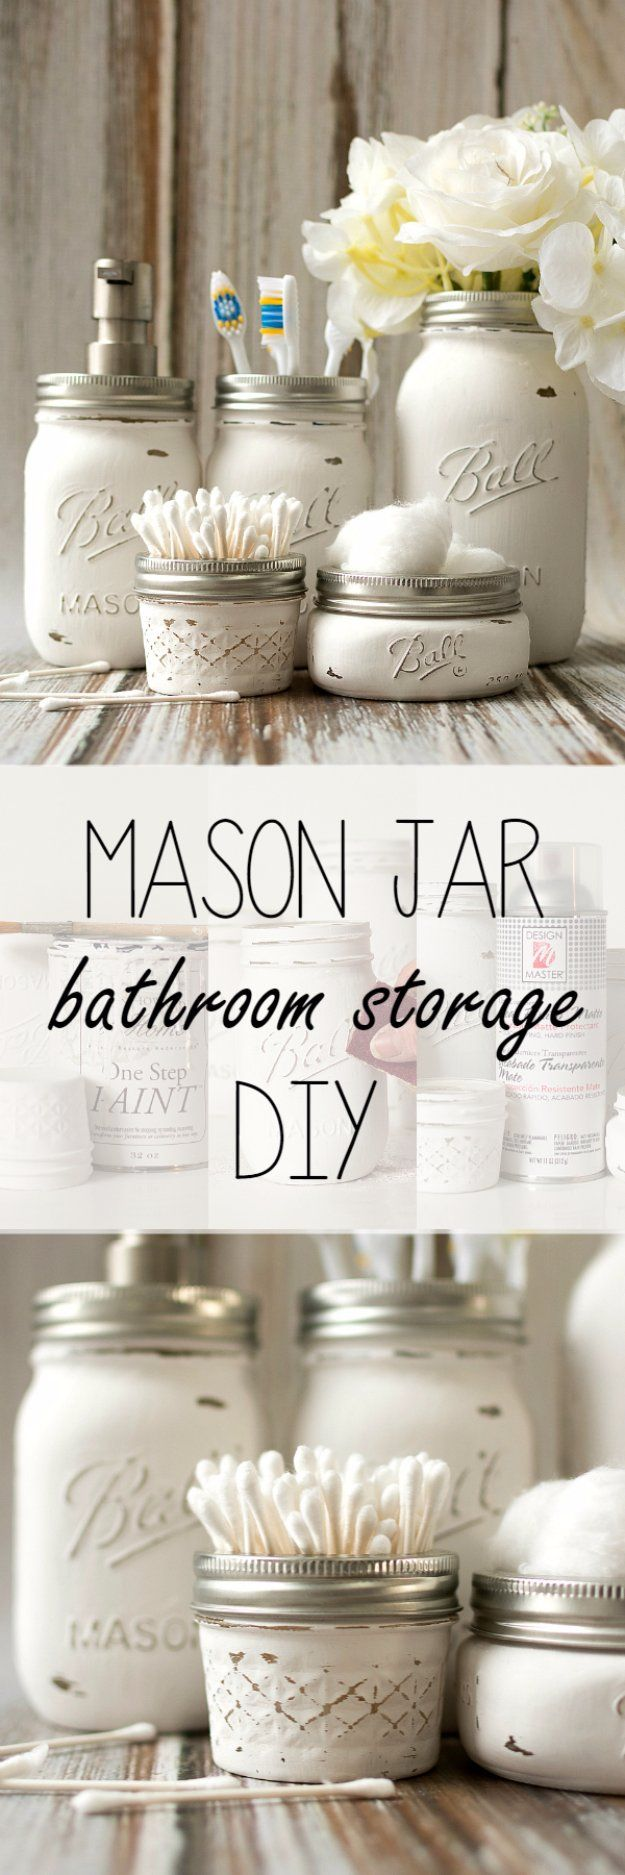 best 25 diy decorating ideas on pinterest diy house decor 31 brilliant diy decor ideas for your bathroom